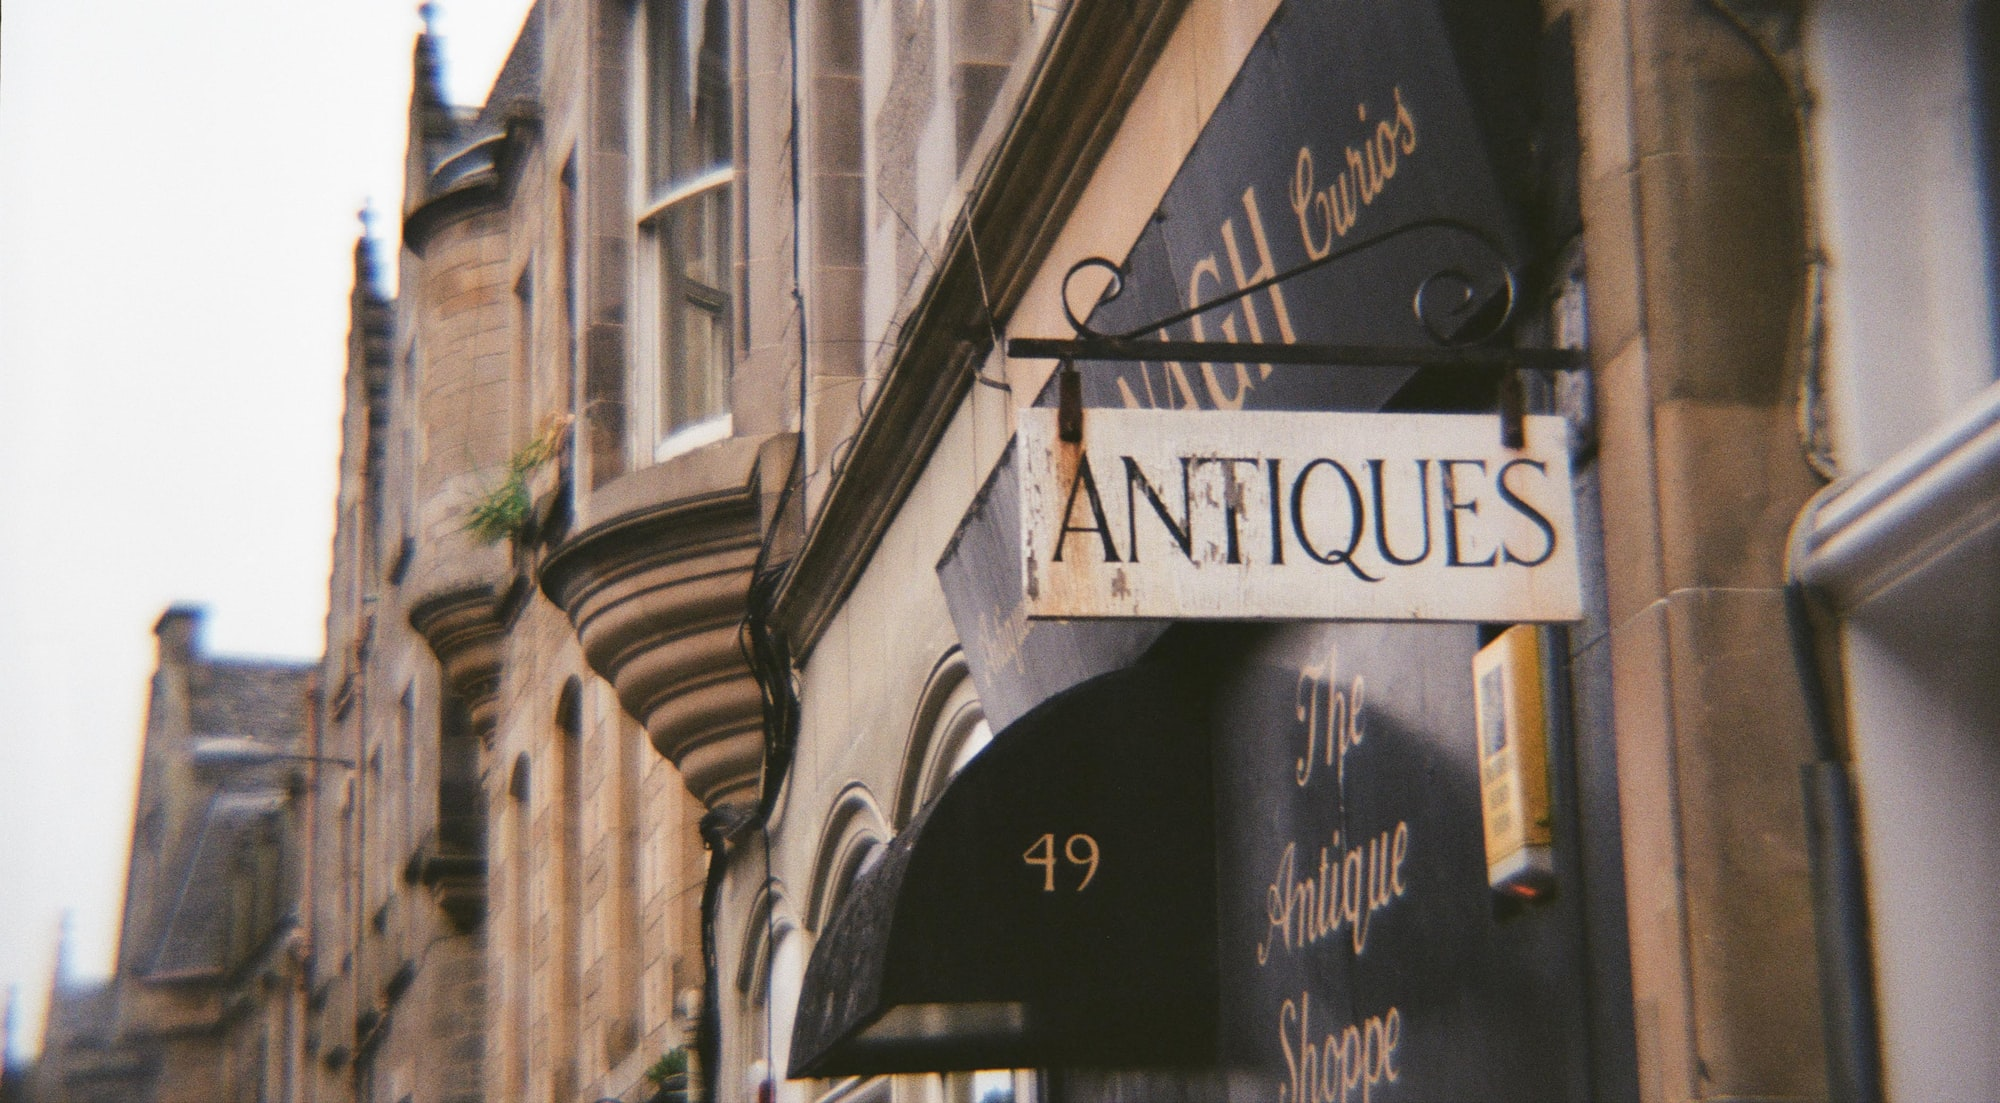 How to stream Antiques Roadshow on BBC iPlayer from abroad